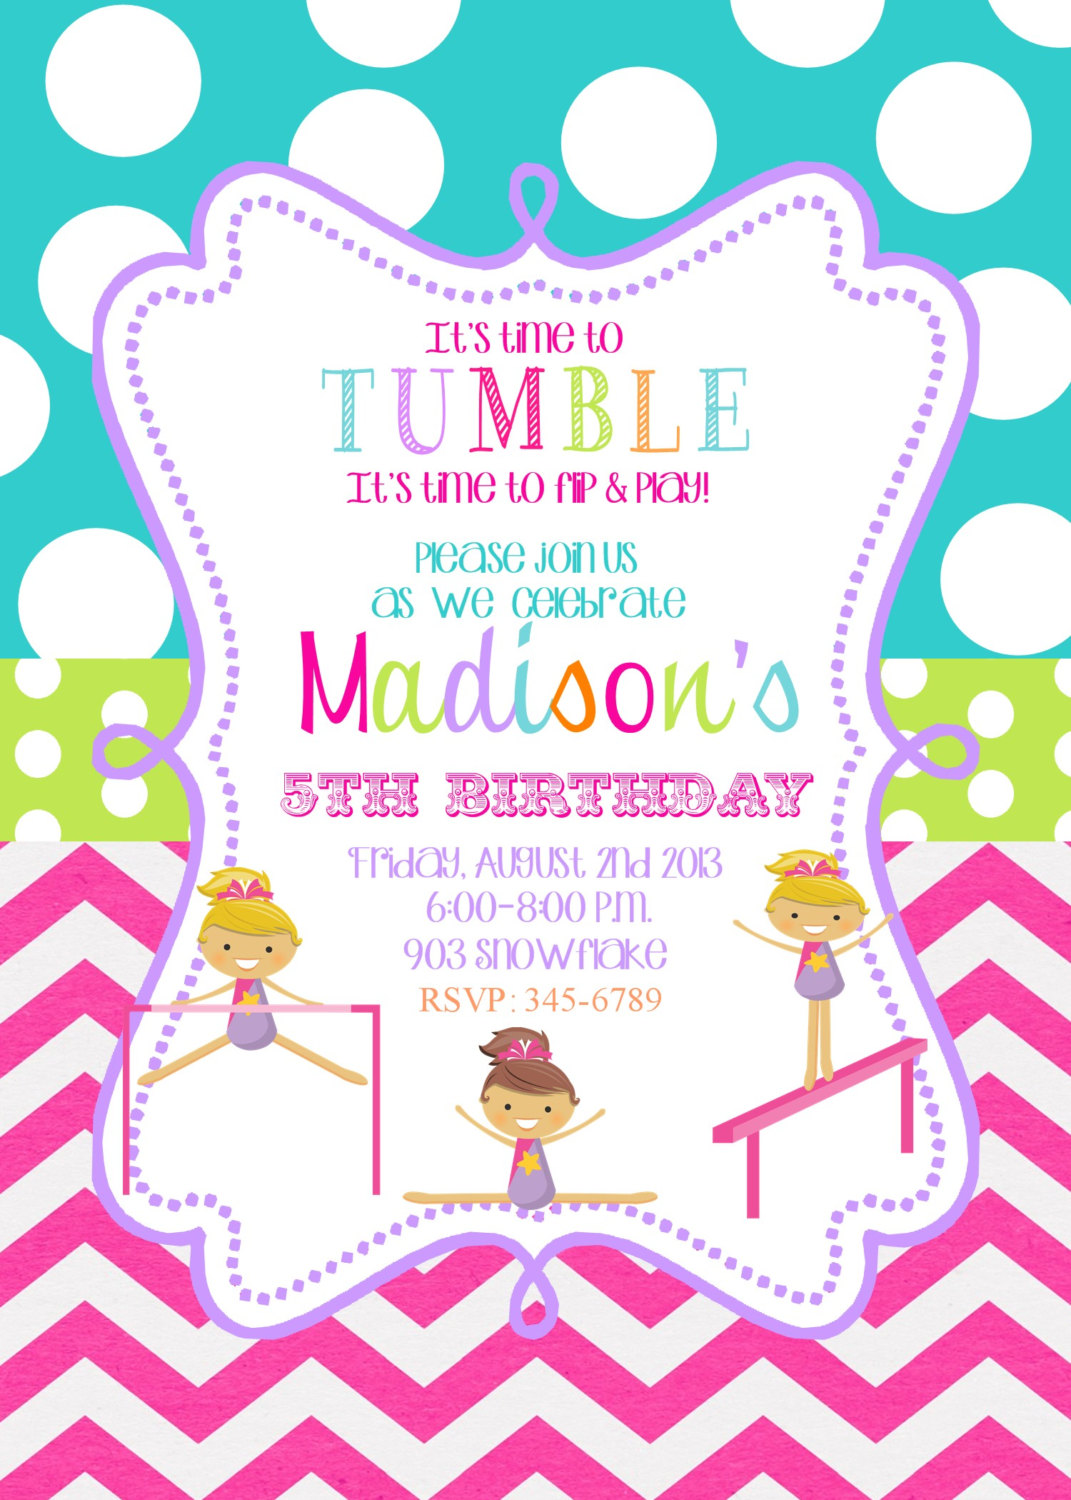 design an invitation card for your birthday party ; Gymnastic-Birthday-Invitations-to-bring-your-dream-design-into-your-Birthday-invitation-7